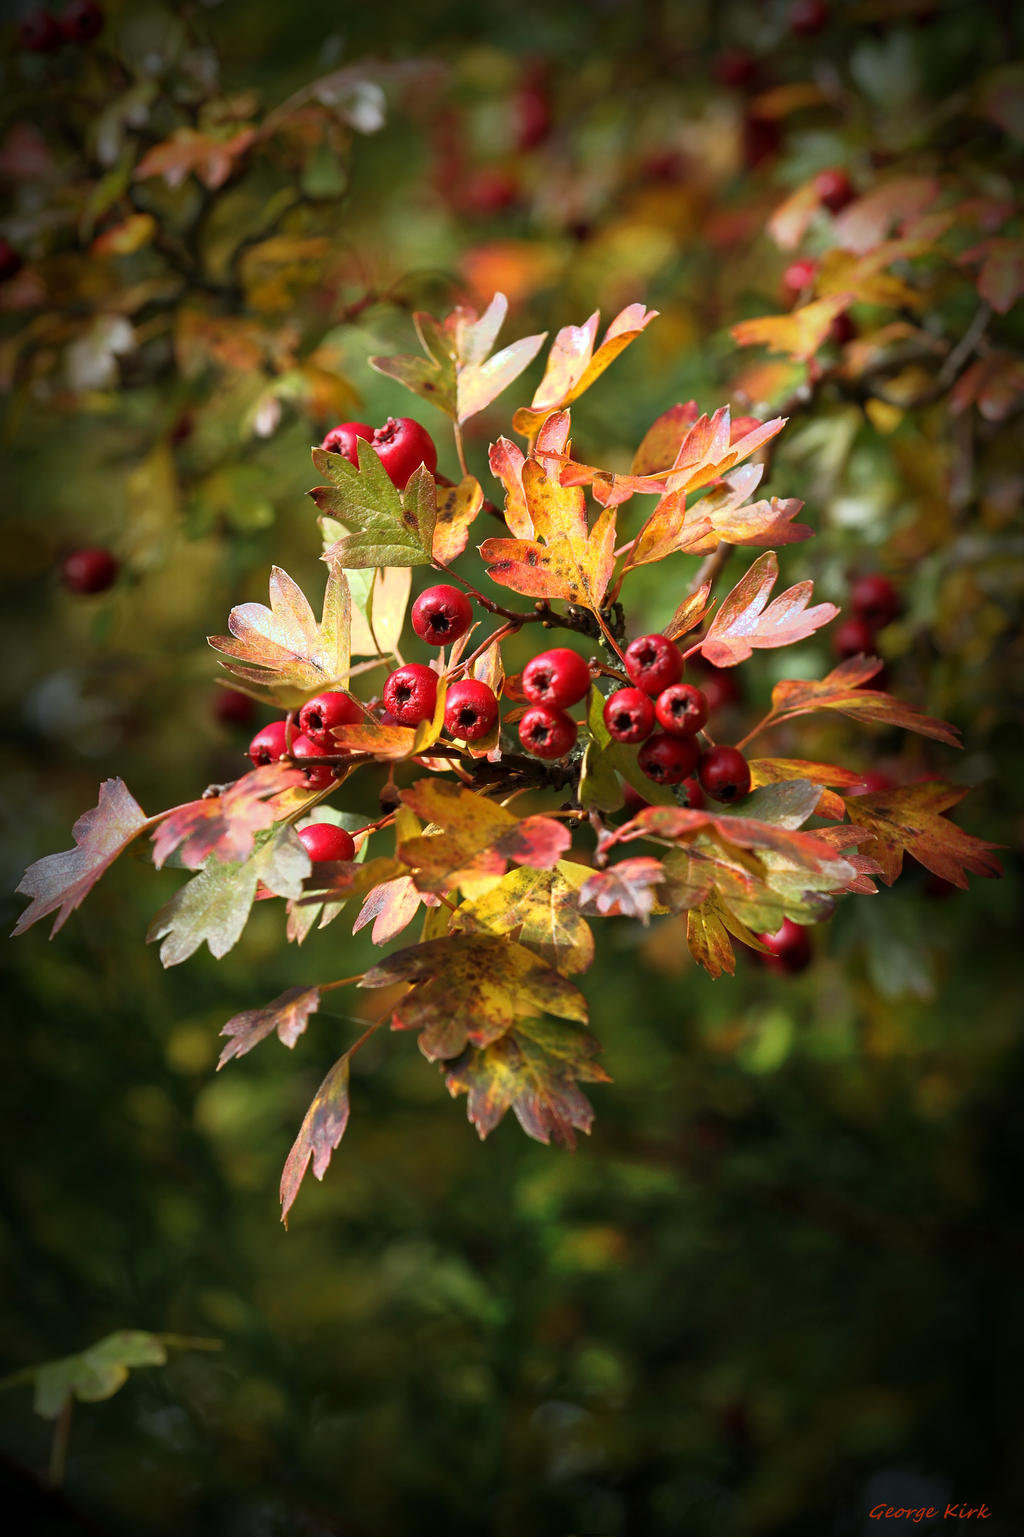 Hawthorn Berries by George---Kirk